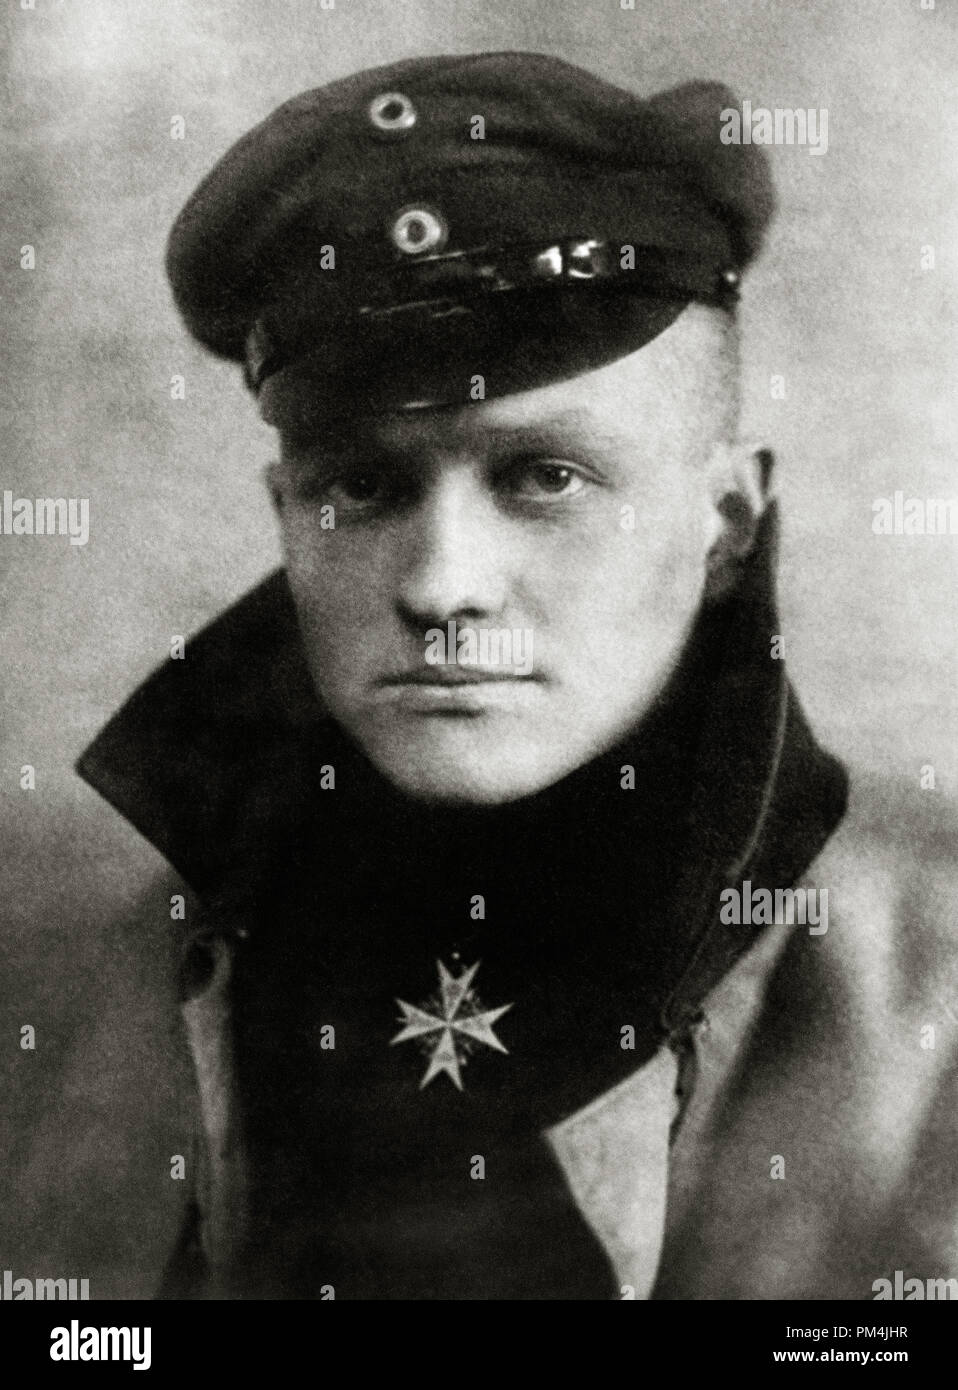 Manfred von Richthofen, The Red Baron. He is considered the ace-of-aces of WWI, being officially credited with 80 air combat victories, circa 1917   File Reference # 1003_783THA - Stock Image